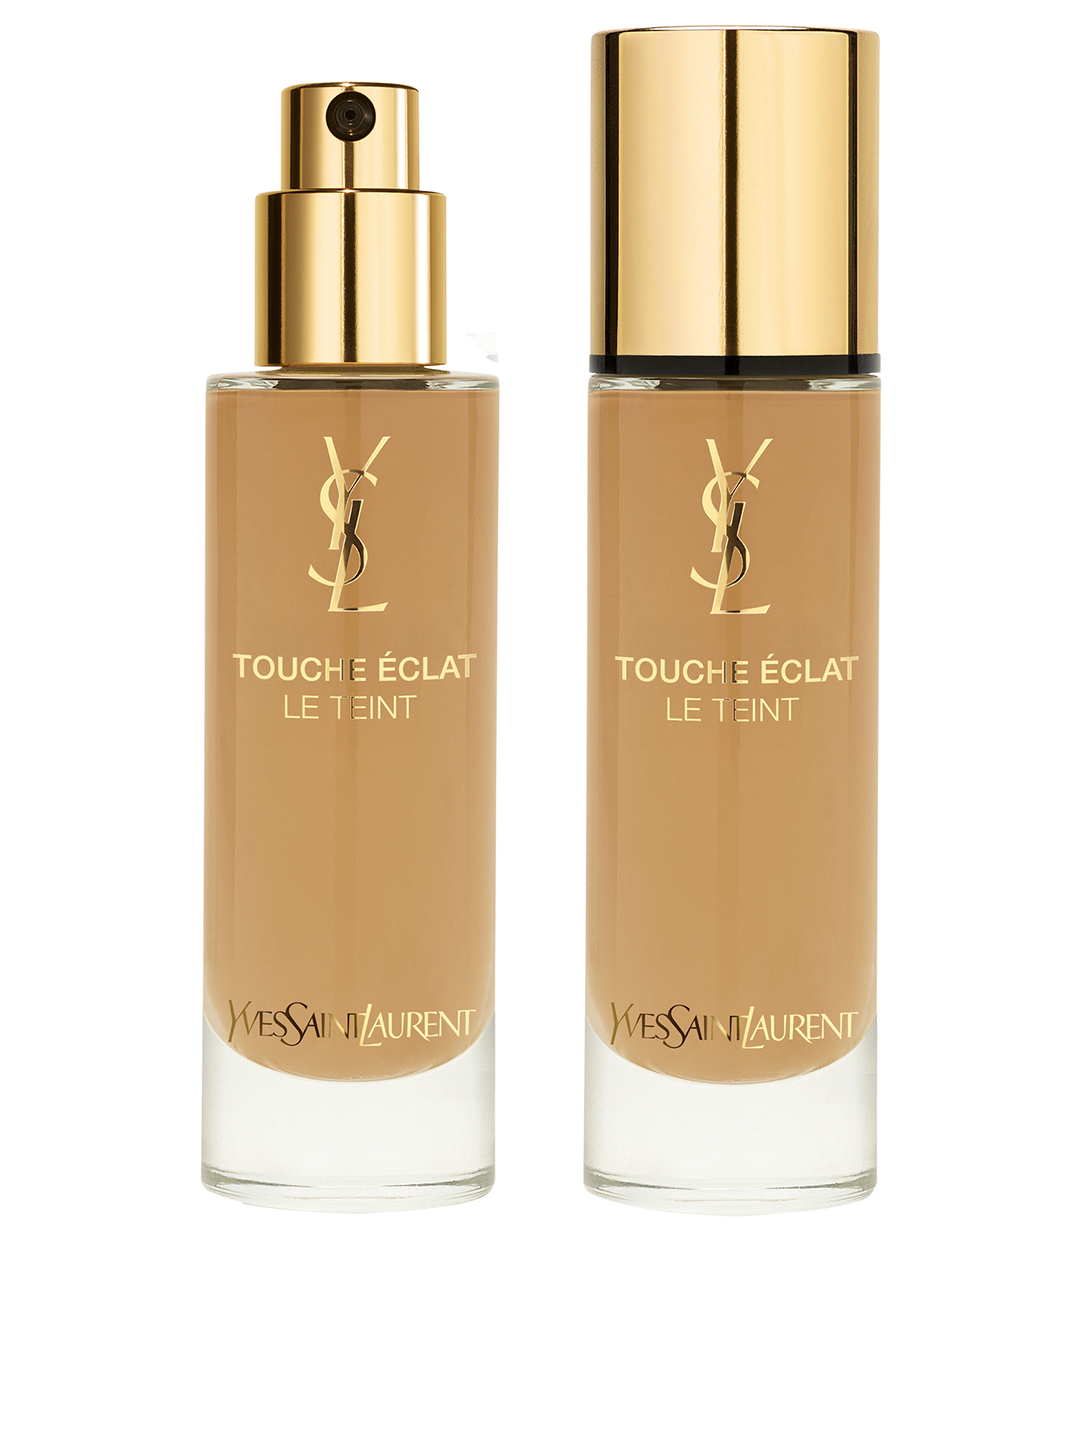 YVES SAINT LAURENT Touche Éclat Le Teint Foundation Beauty Neutral